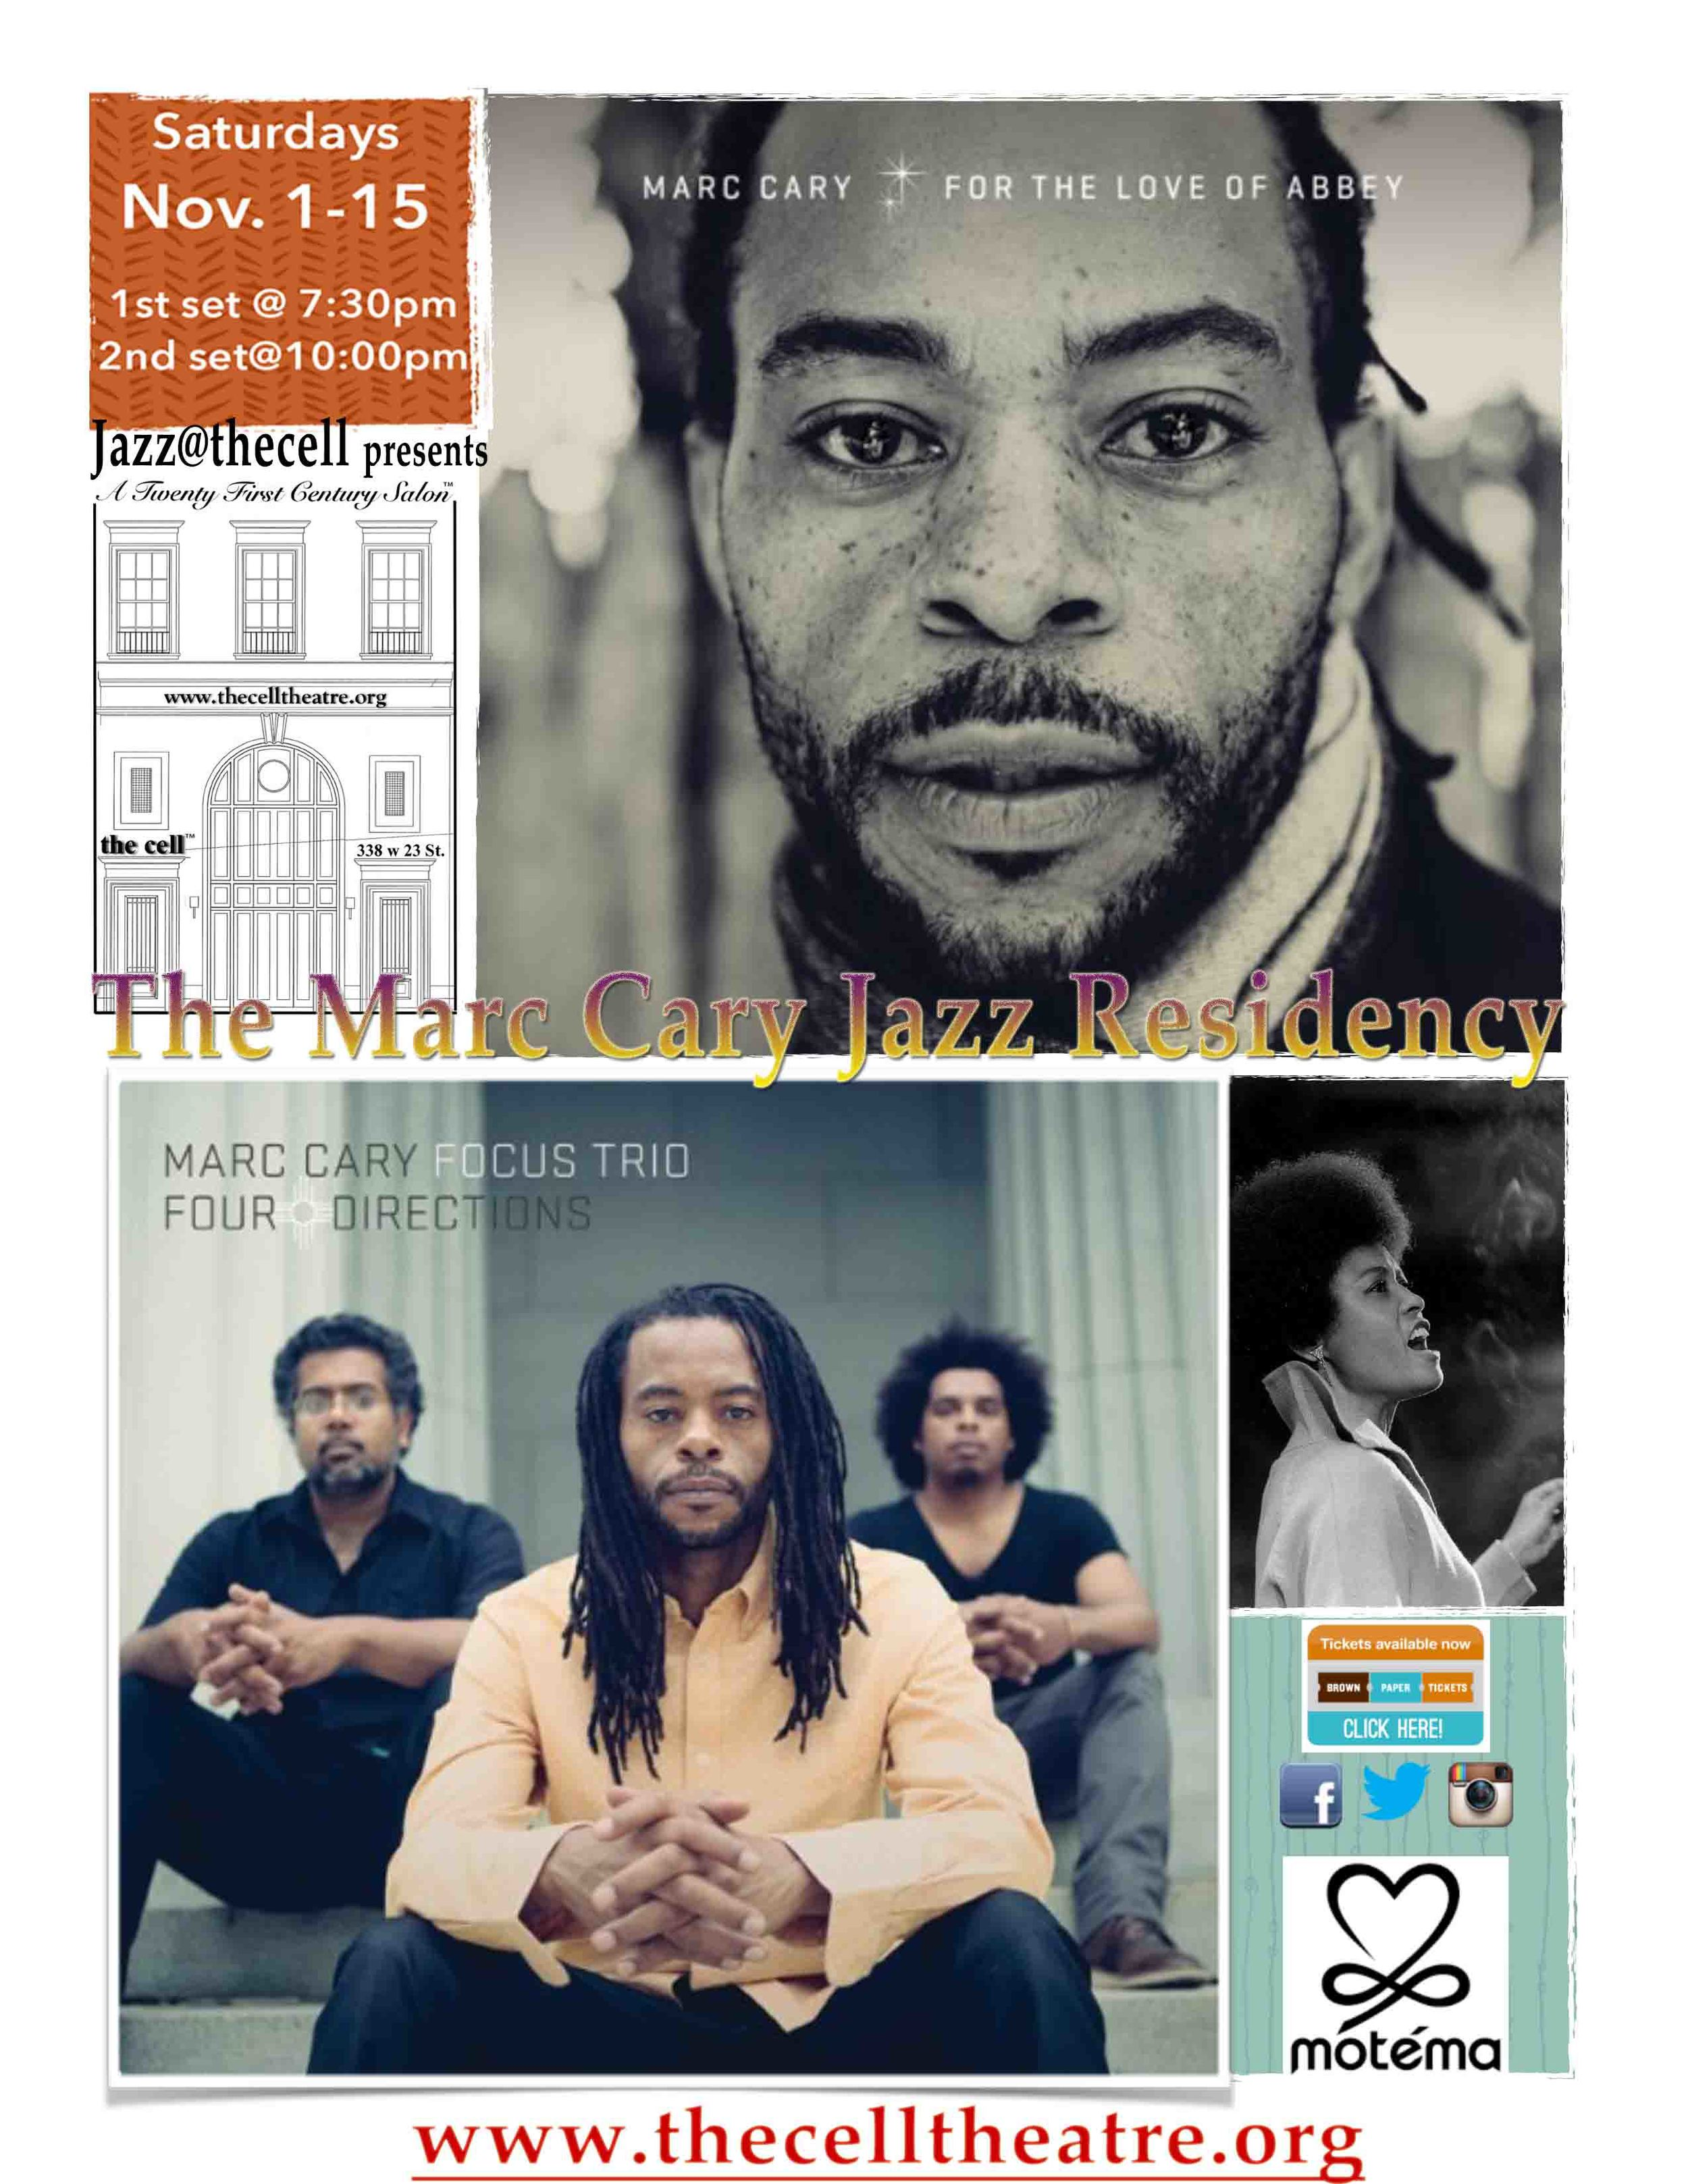 "Marc Cary: The Key Man – Jazz residency @the cell          Saturdays Nov, 1-15      1st Set at 7:30 pm      2nd Set at 10:00 pm        Recently voted ""Rising Star"" keyboardist     in Downbeat's 62nd annual Critic's Poll in 2014, pianist, keyboardist and composer, Marc Cary has become known as one of the best and most original jazz pianists in New York. He is a graduate of the rigorous bandstand academy long run by late vocalist Betty Carter, as well as a 12 years tenure accompanying Abbey Lincoln, and he plays with the big ears and vivid improvisational imagination that she required.  As we enter into 2015, Marc Cary embarks upon celebrating 20 years as a lead recording artist as well as 10 years with indie jazz sensation Motema Music.     This 3 night residency will celebrate a long and diverse recording career, anchored by Focus Trio and joined by some very special friends.        Saturdays 1st and 8th November           1ST SET 7:30 pm  - Marc Cary: A celebration of Abbey Lincoln (solo)          2nd SET 10:00 pm  - Focus Trio   with special guests Pyeng Threadgill and Latosha Diggs          Saturday 15th November        Focus Trio and friends - covering material from Marc's 20 year recording career          1st Set 7:30 pm - A Marc Cary Retrospective Part I      2nd Set 10:00 pm - A Marc Cary Retrospective Part II     featuring   Focus Trio ,  Rhodes Ahead ,  Indigenous People"